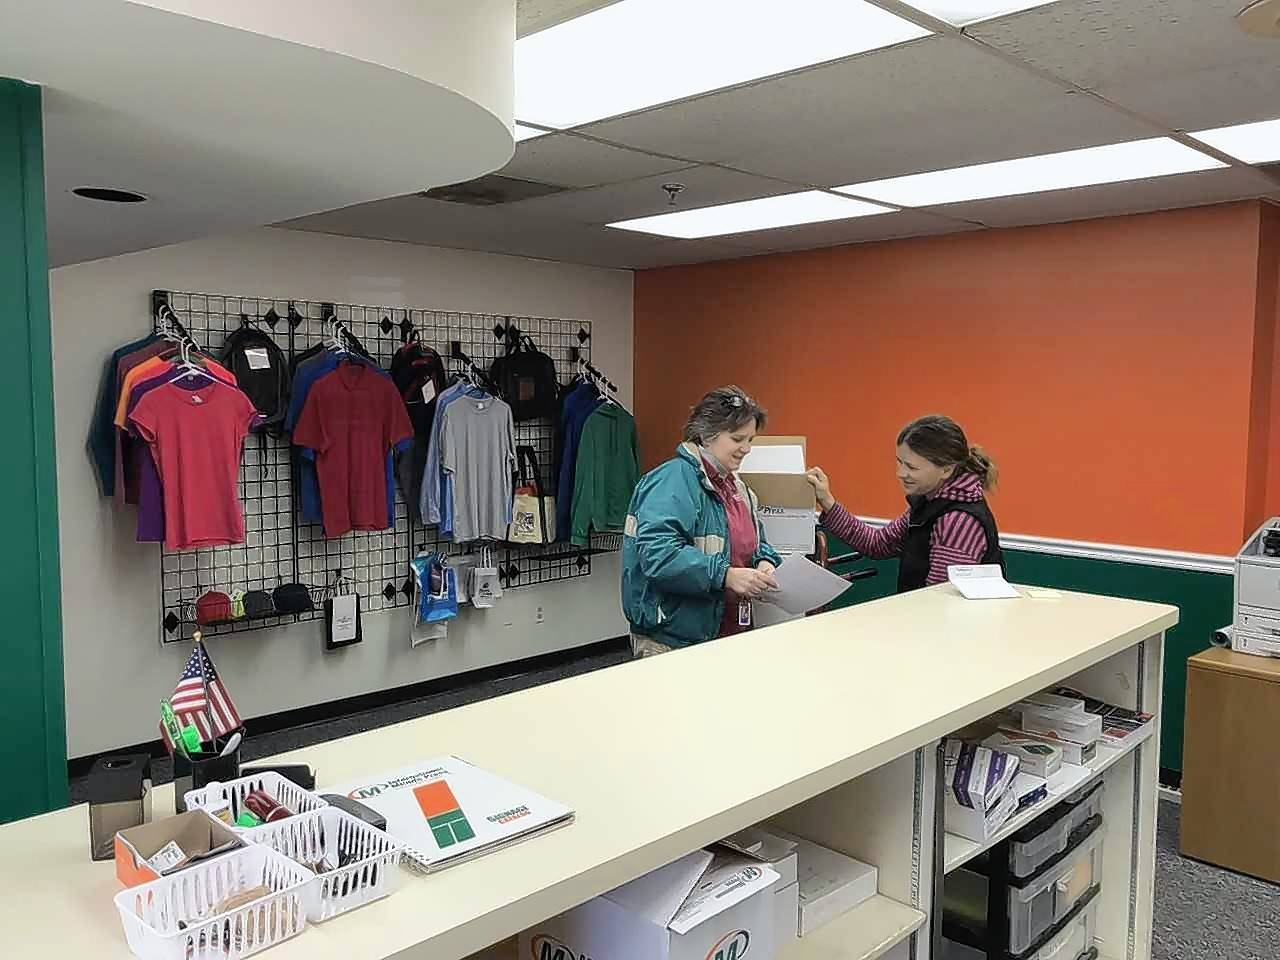 Minuteman Press of Barrington expanded its printing and marketing services in the area with the recent purchase of Barrington Print and Copy.